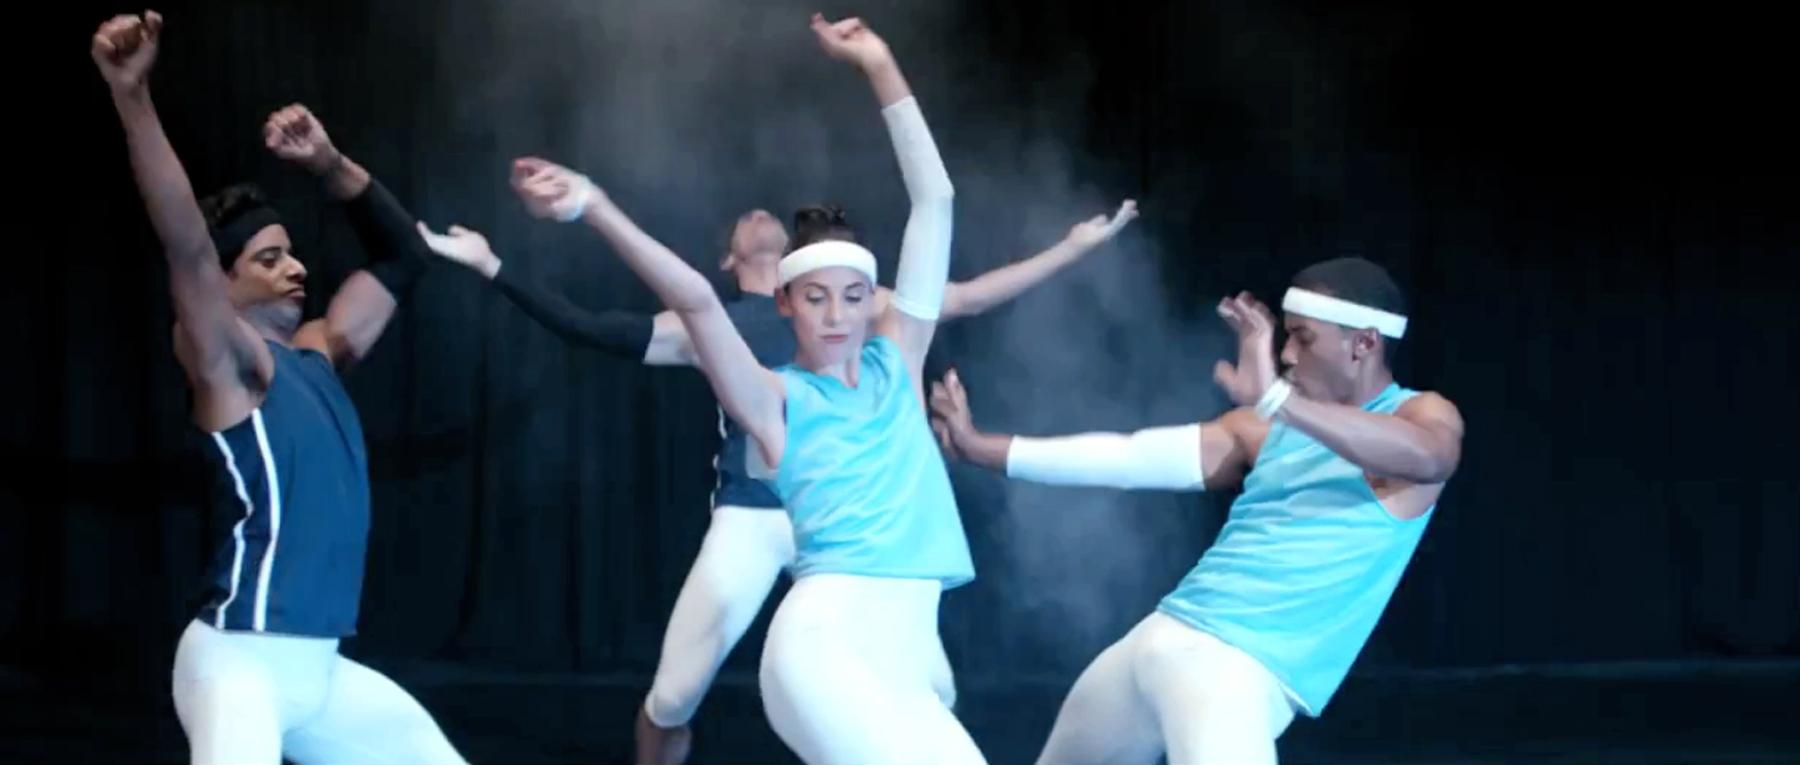 Ballerinas and ballerinos show off victory dances in PlayStation Spots http://t.co/M3zAzIyn9b http://t.co/47hzIXVhui